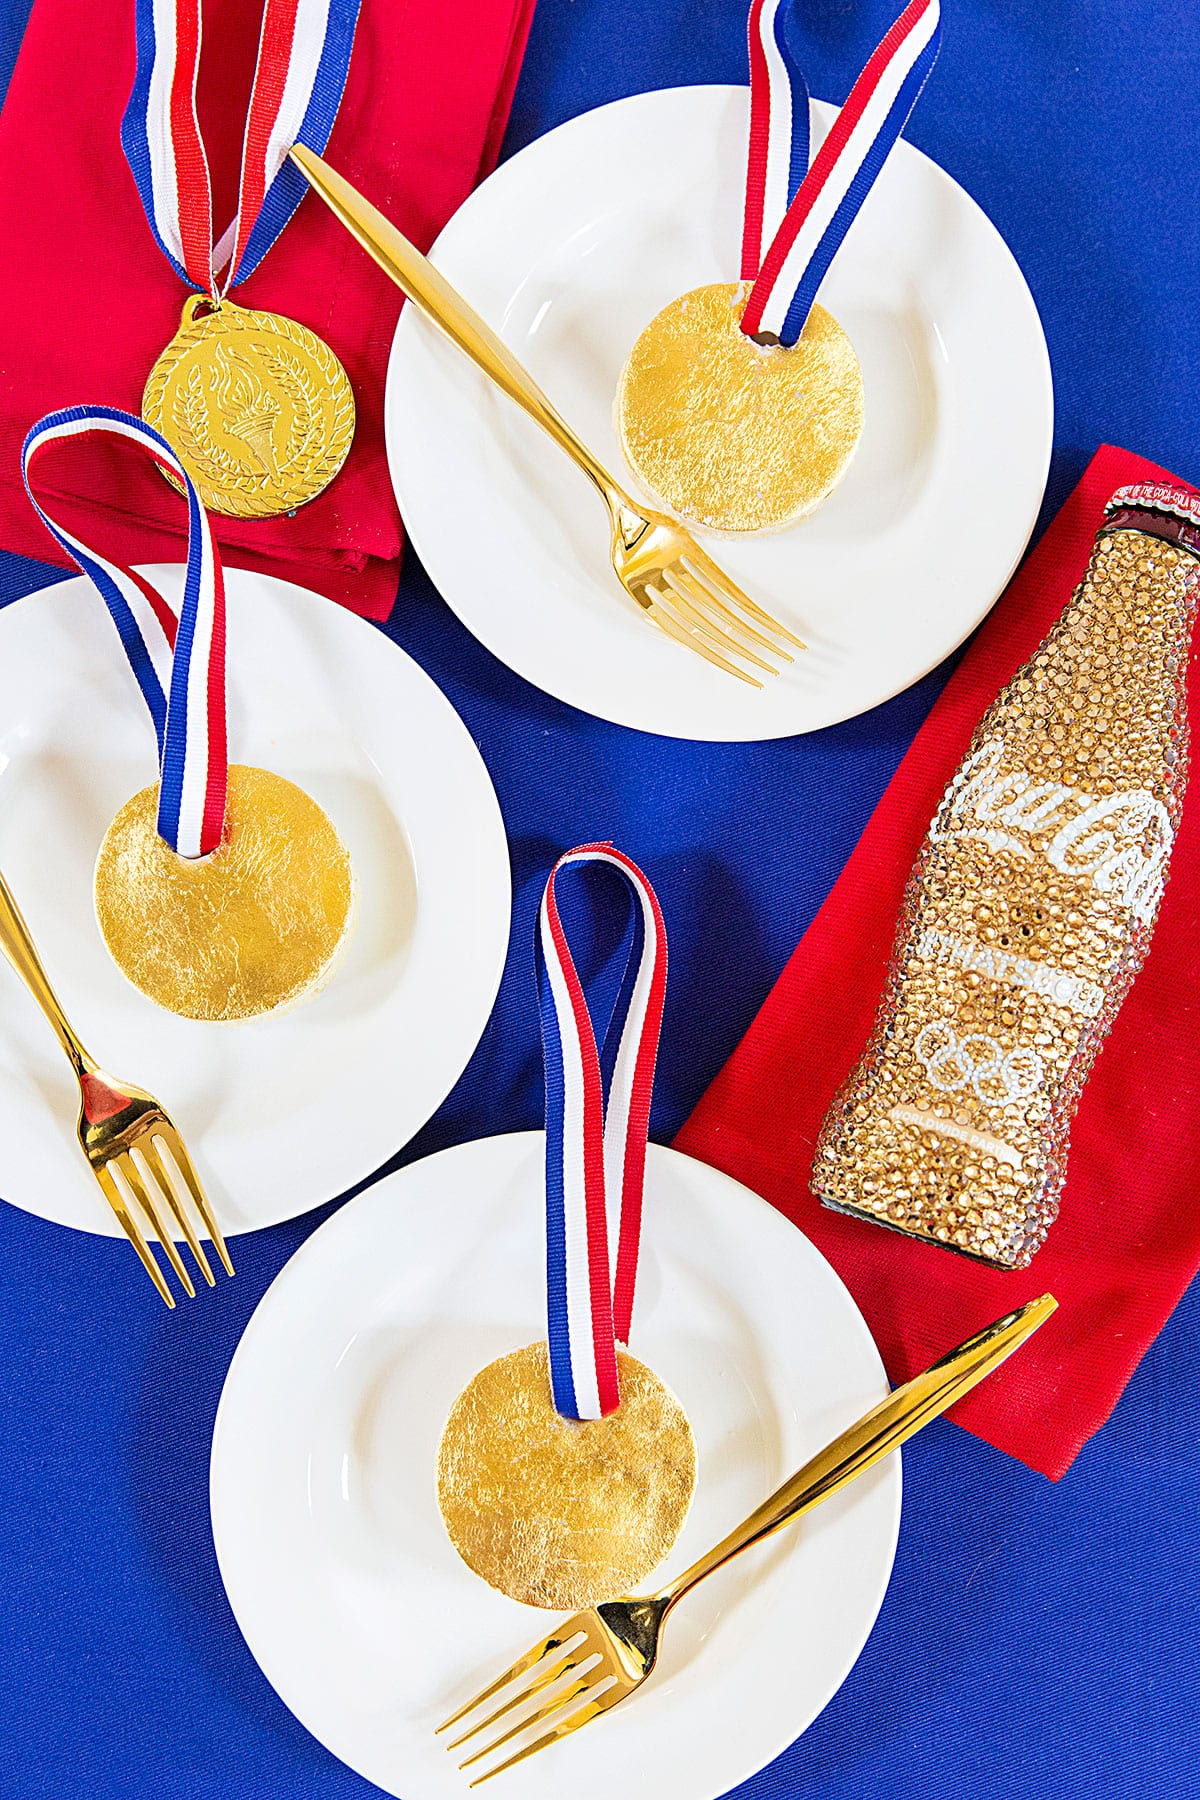 Mini Gold Medal Cakes for the Olympics!